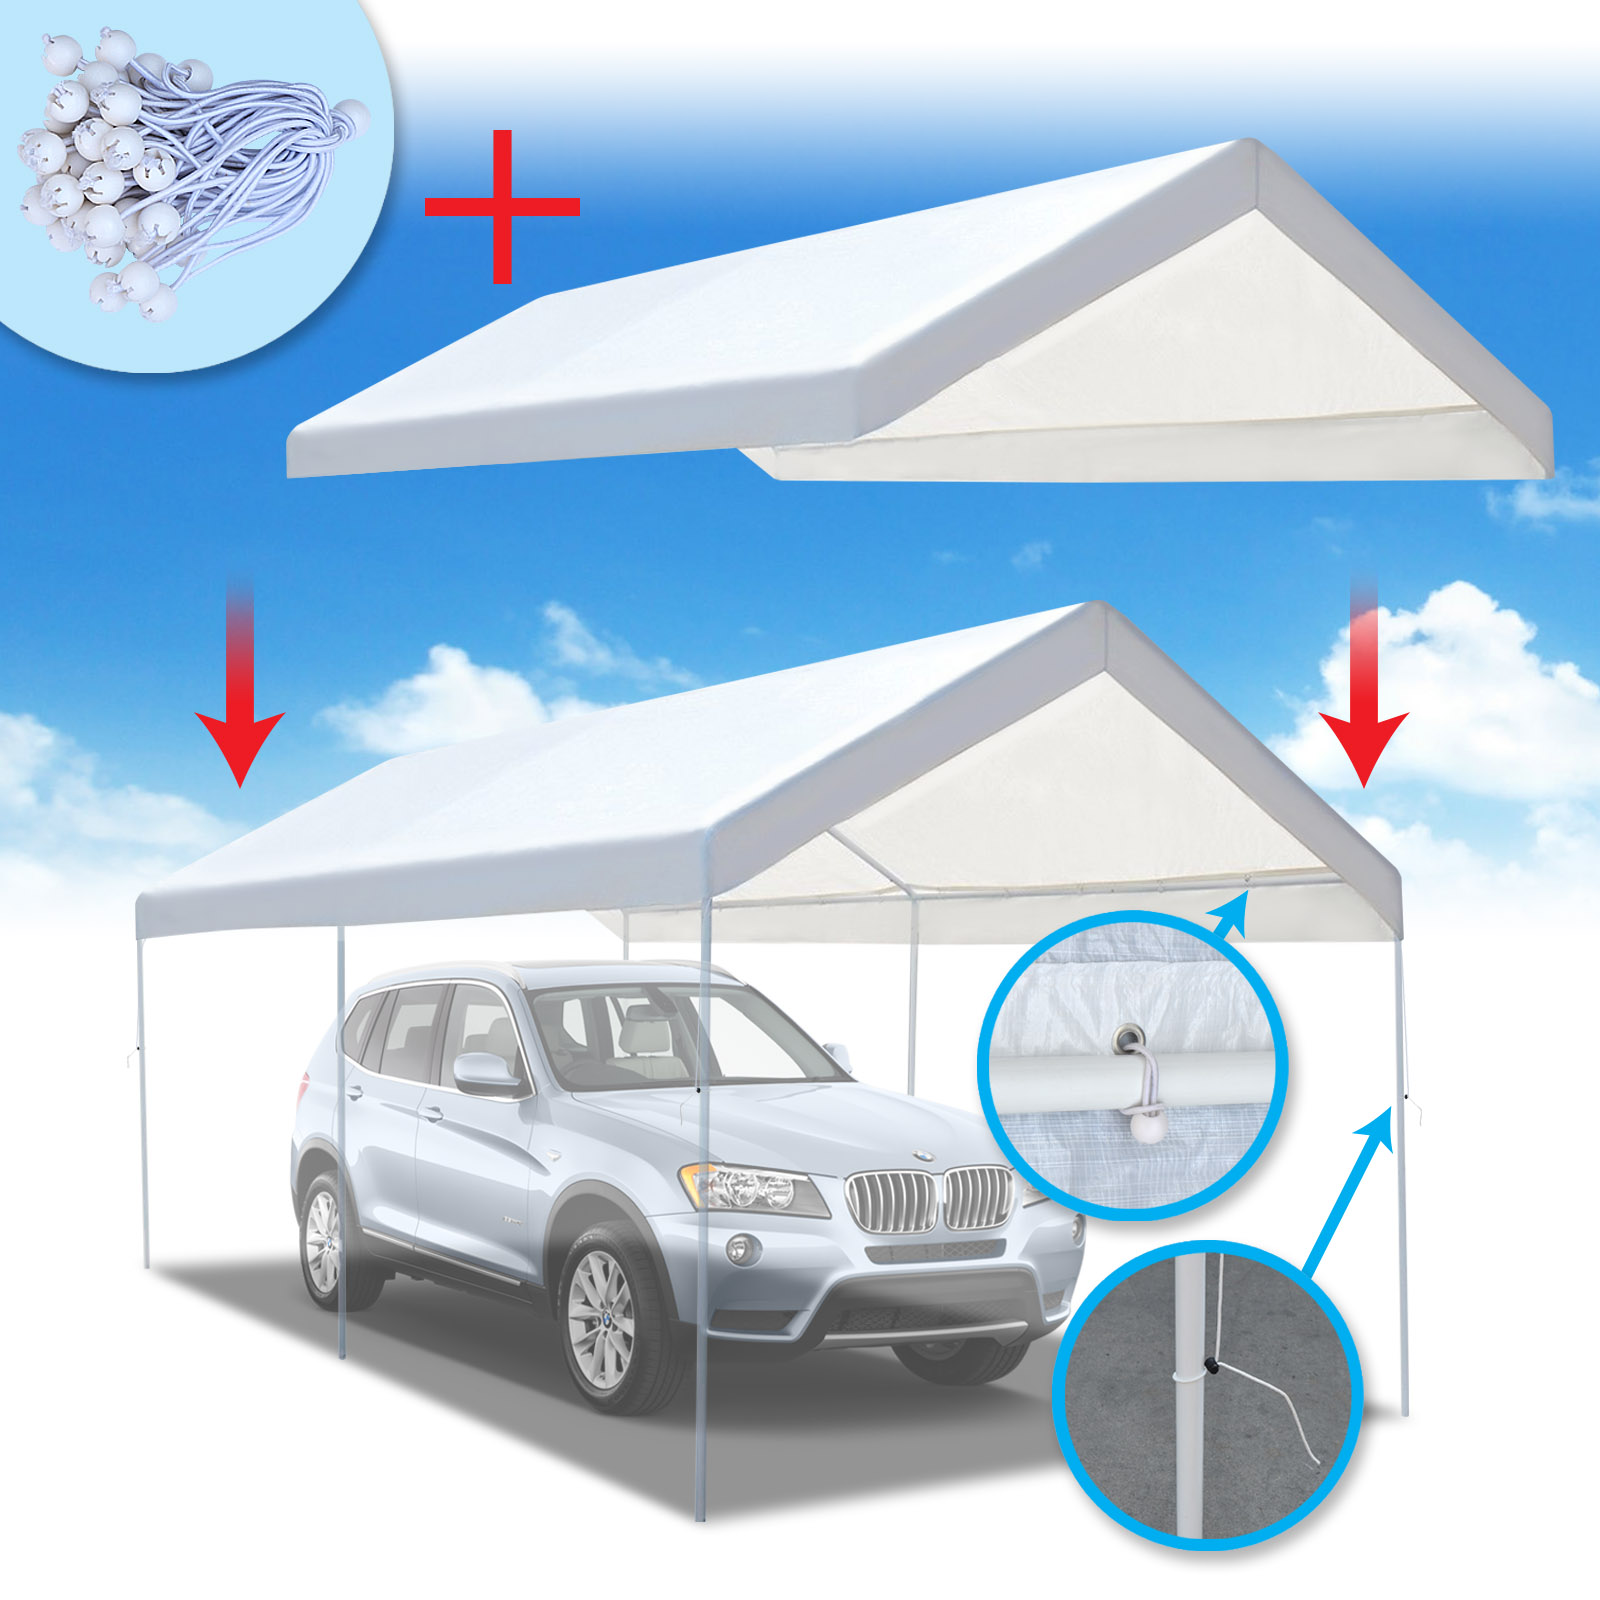 Strong Camel New 10'x20' Carport Replacement Canopy Cover for Tent Top Garage Shelter Cover w Ball Bungees (Only cover,... by Sunny Outdoor Inc